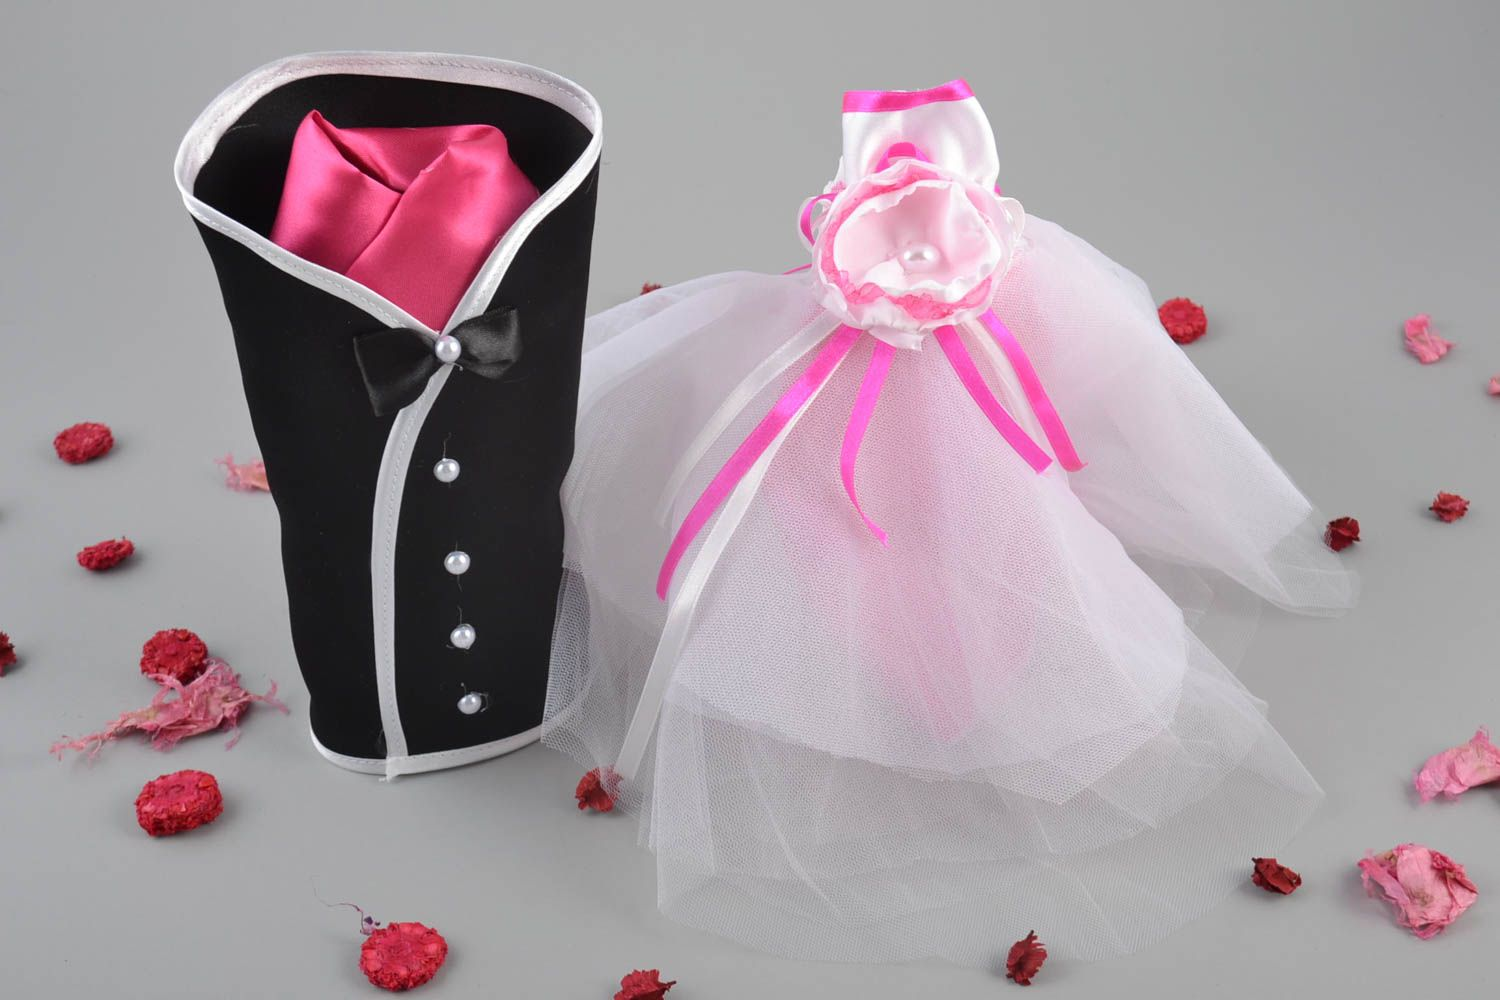 Handmade clothes groom and bride for champagne bottles set of 2 pieces photo 1